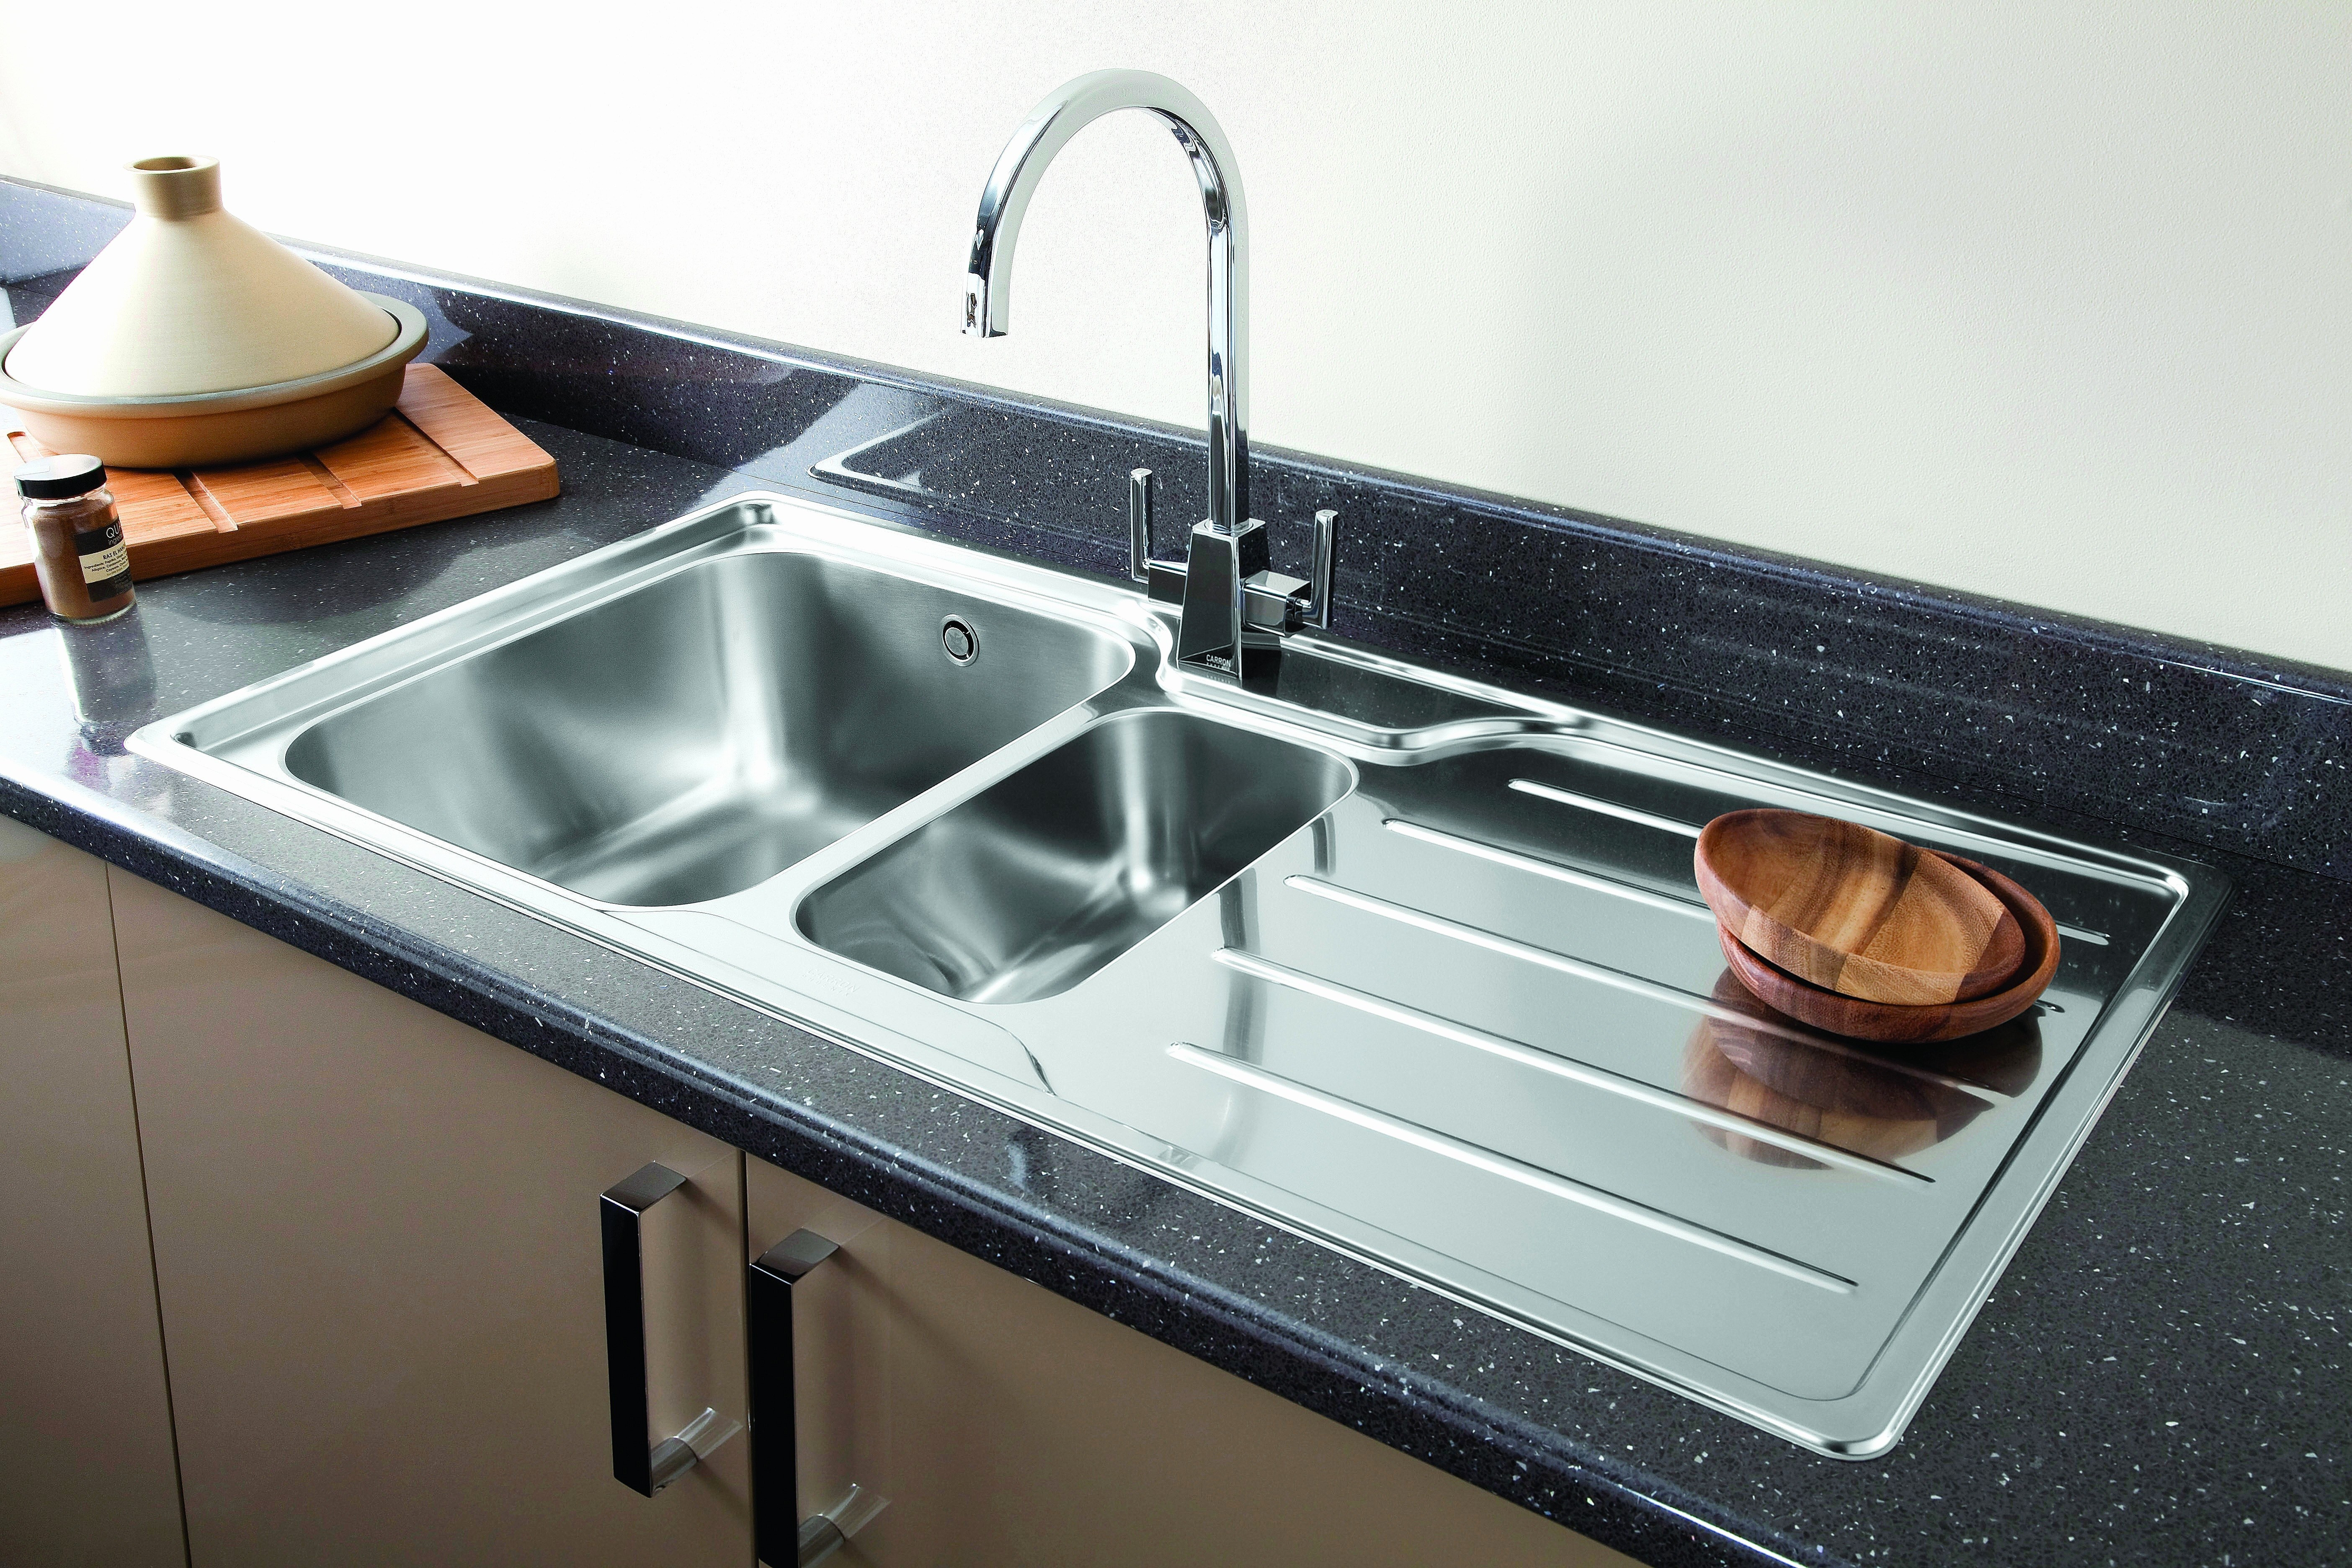 6 Inch Kitchen Sink Faucet New Fresh 6 Inch Kitchen Sink Faucet Intended  For Proportions 5616